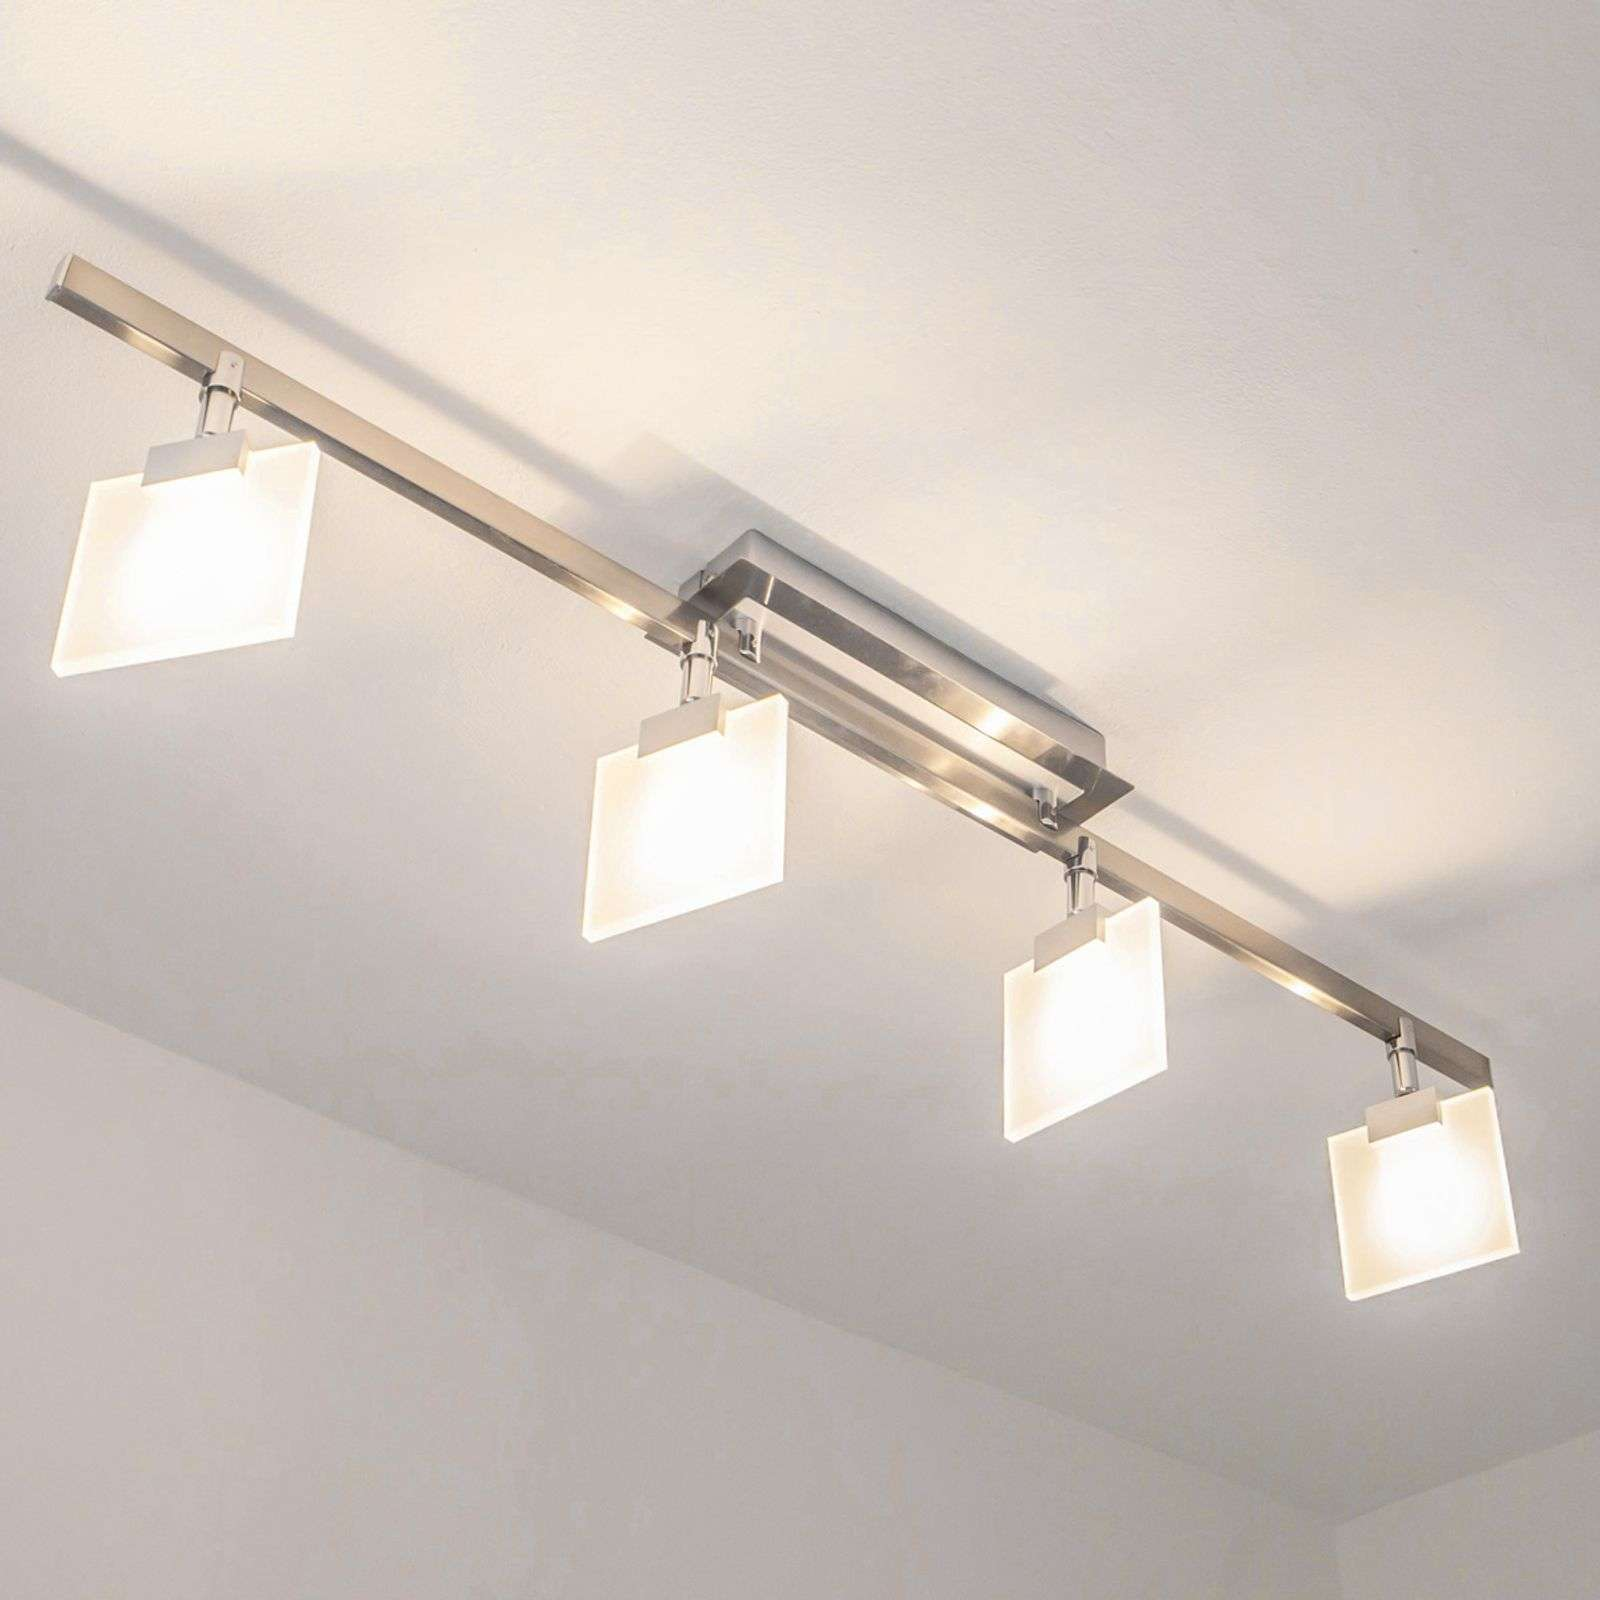 Applique soffitto Livius, per cucina, LED COB